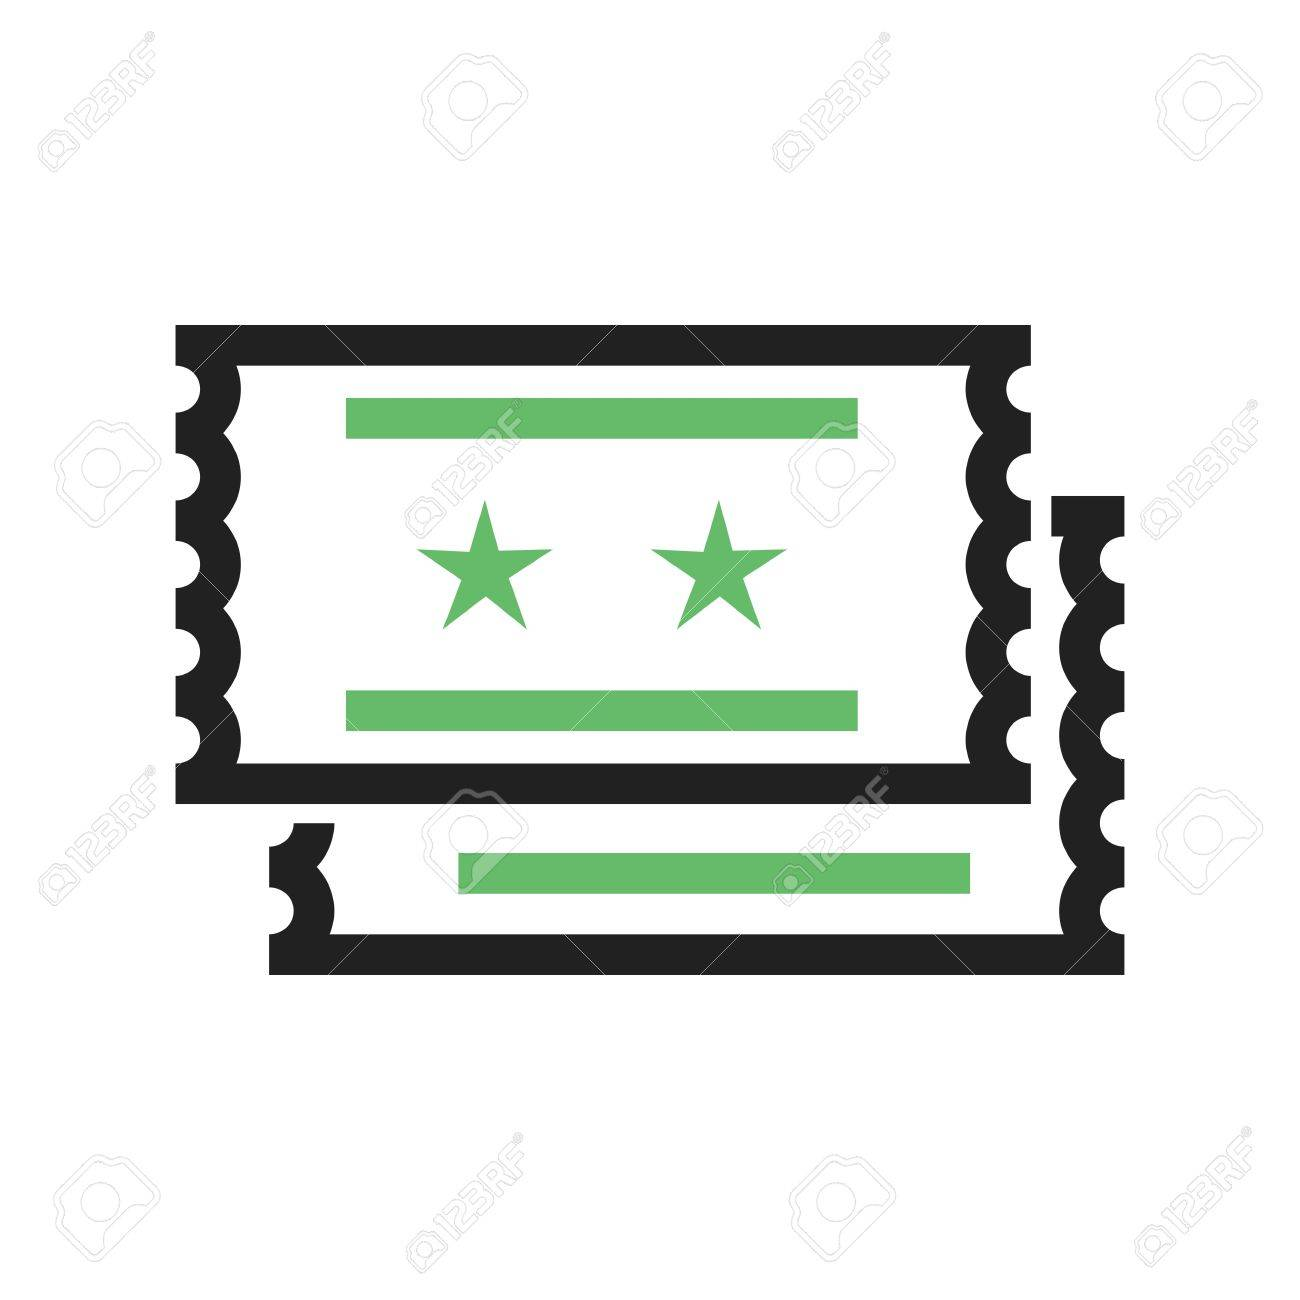 movie tickets raffle icon vector image can also be used for movie tickets raffle icon vector image can also be used for outdoor fun